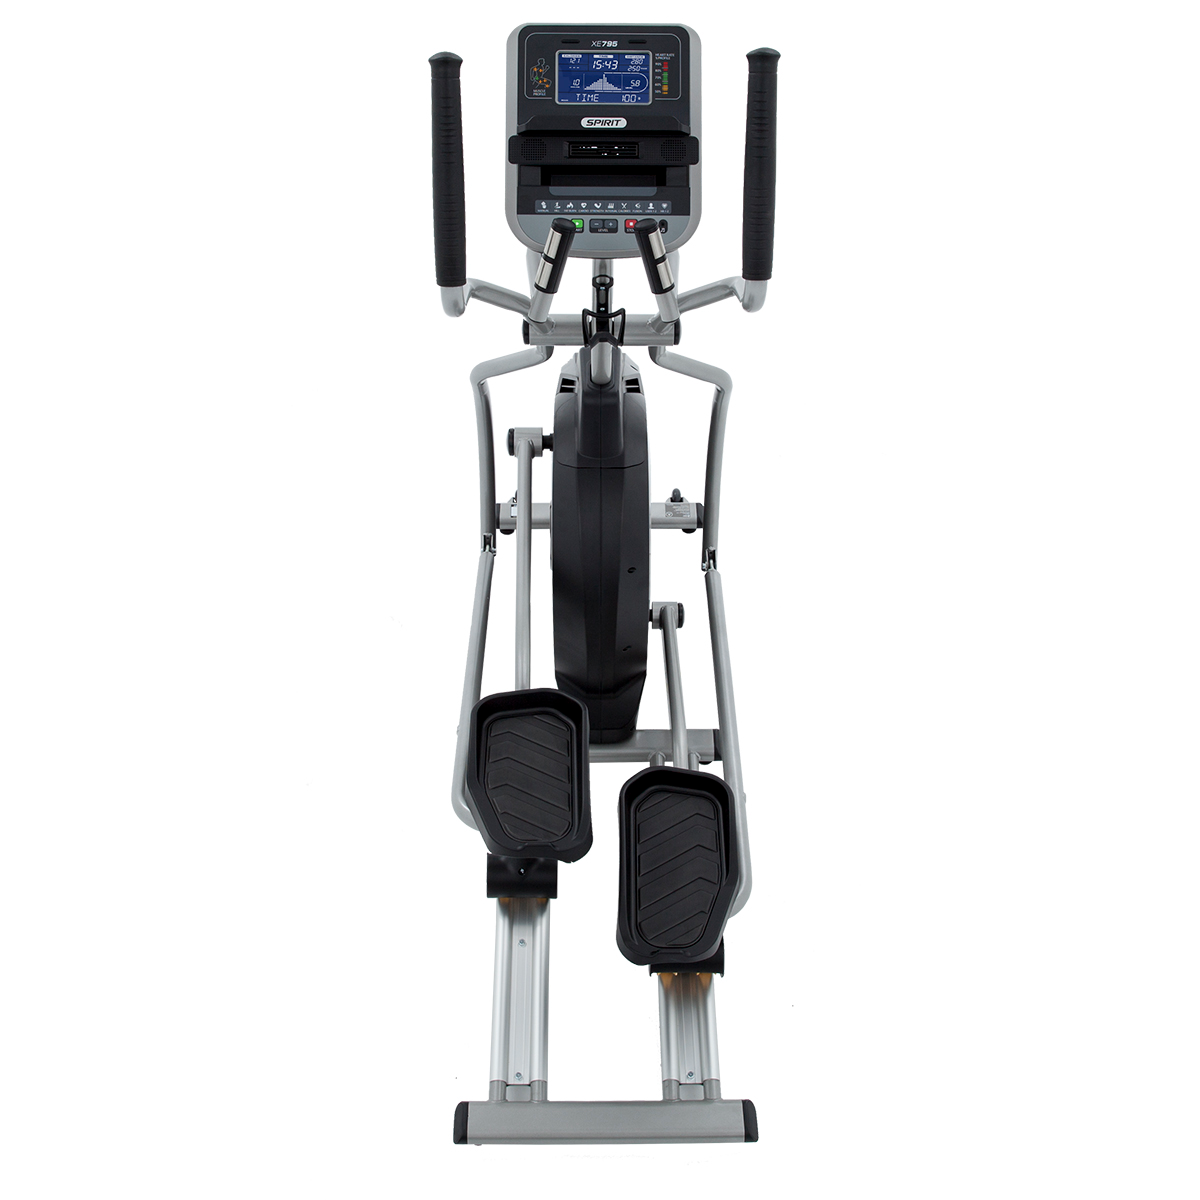 Full view from the back of the Spirit Fitness XE795 elliptical showing pedals, articulating and stationary handgrips, and full monitor console.